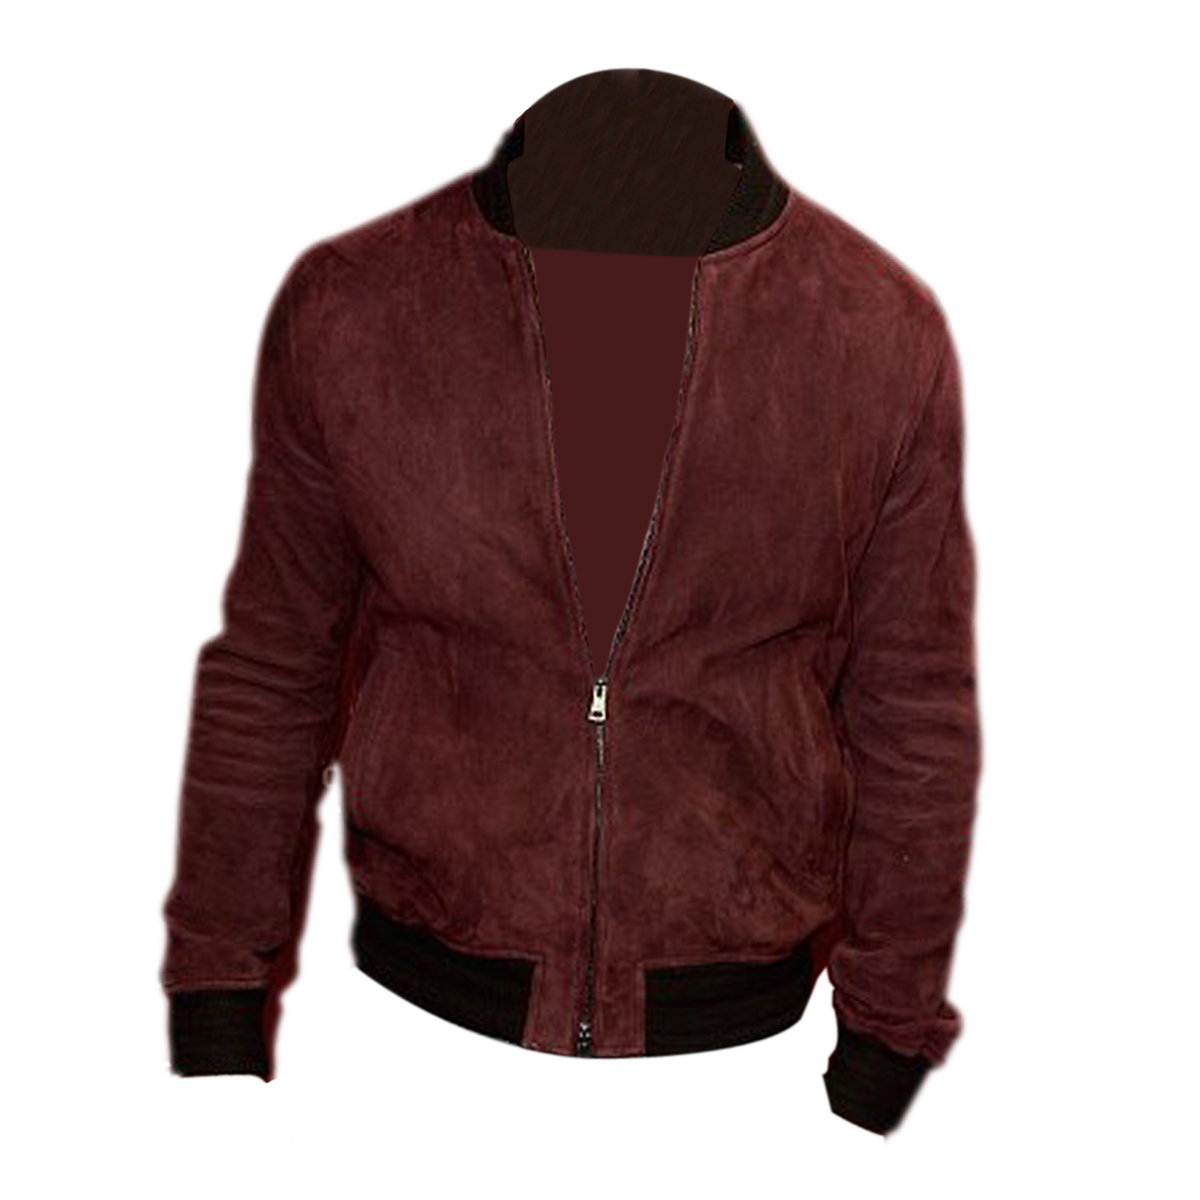 Mississippi Grind Ryan Reynolds jacket